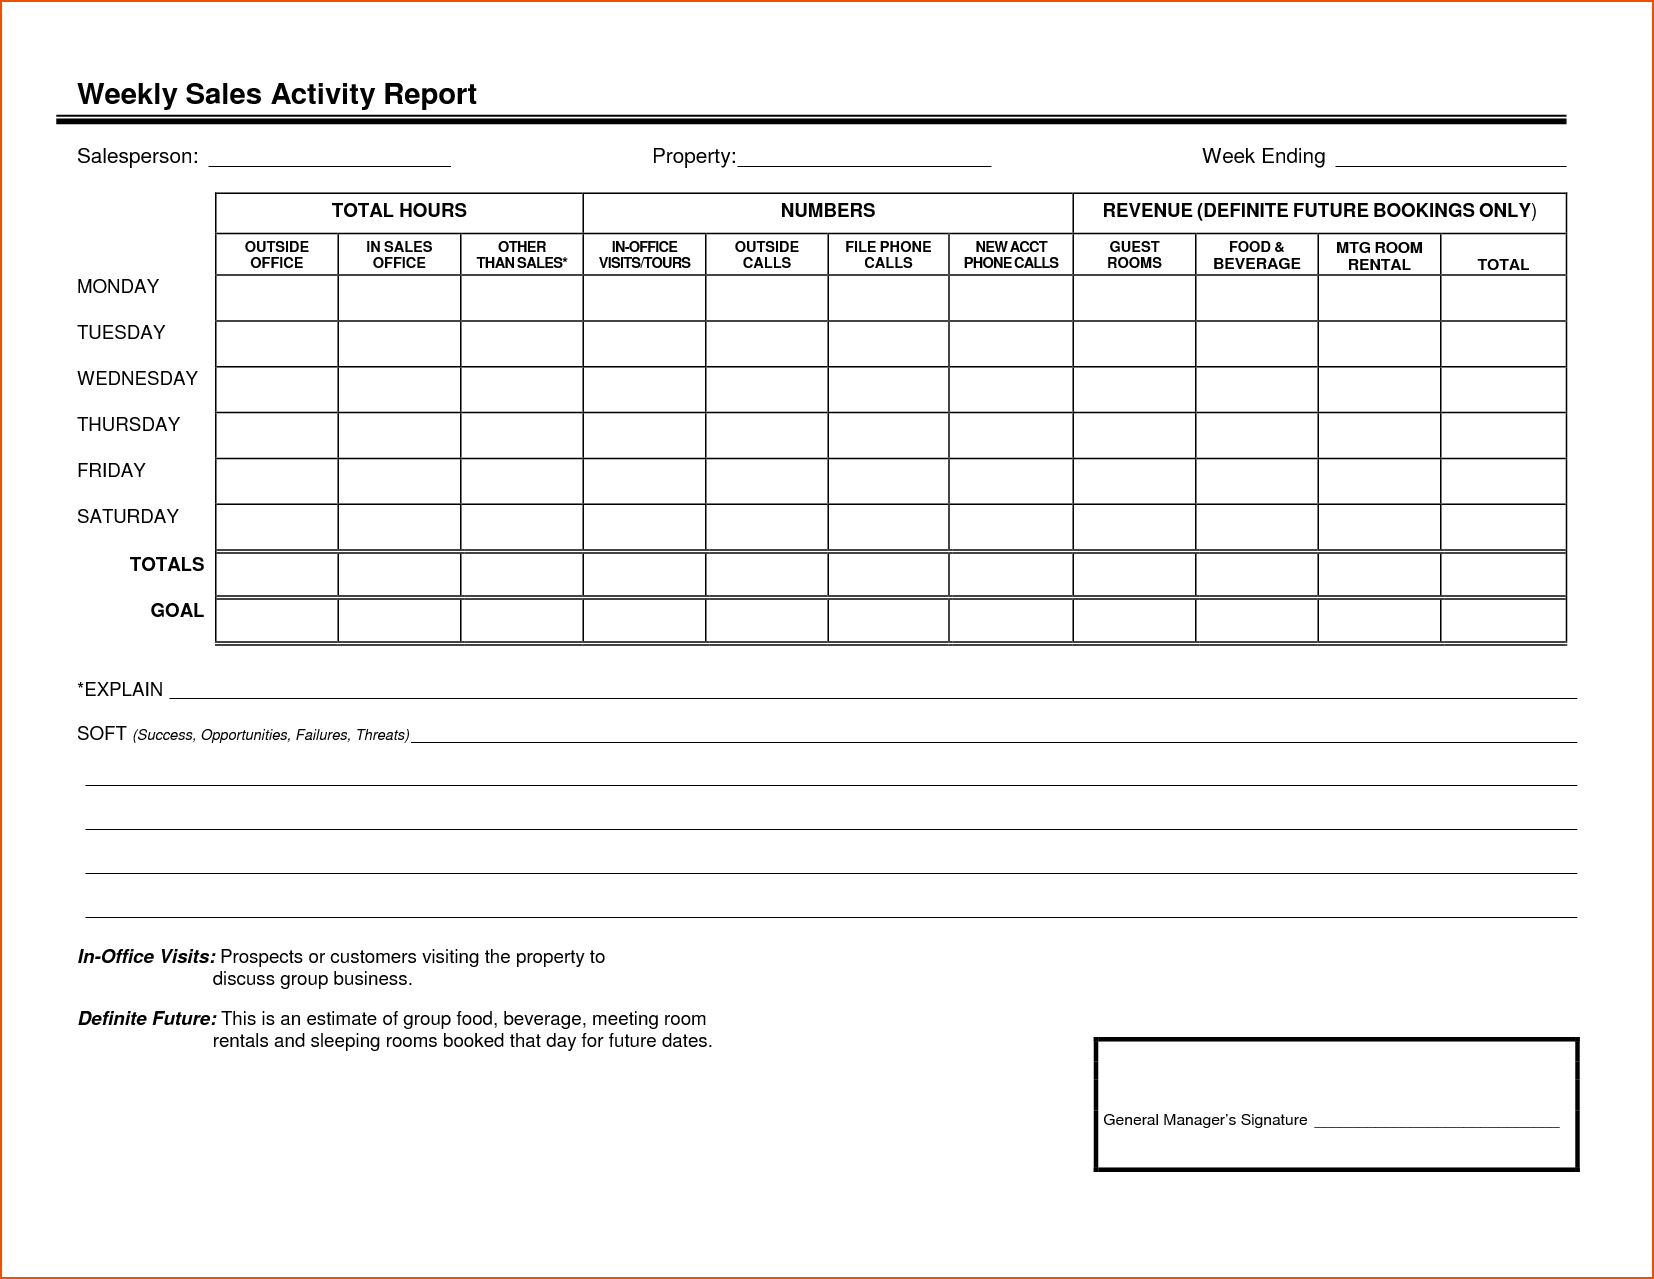 Sales Reporting Templates and Monthly Sales Activity Report Template